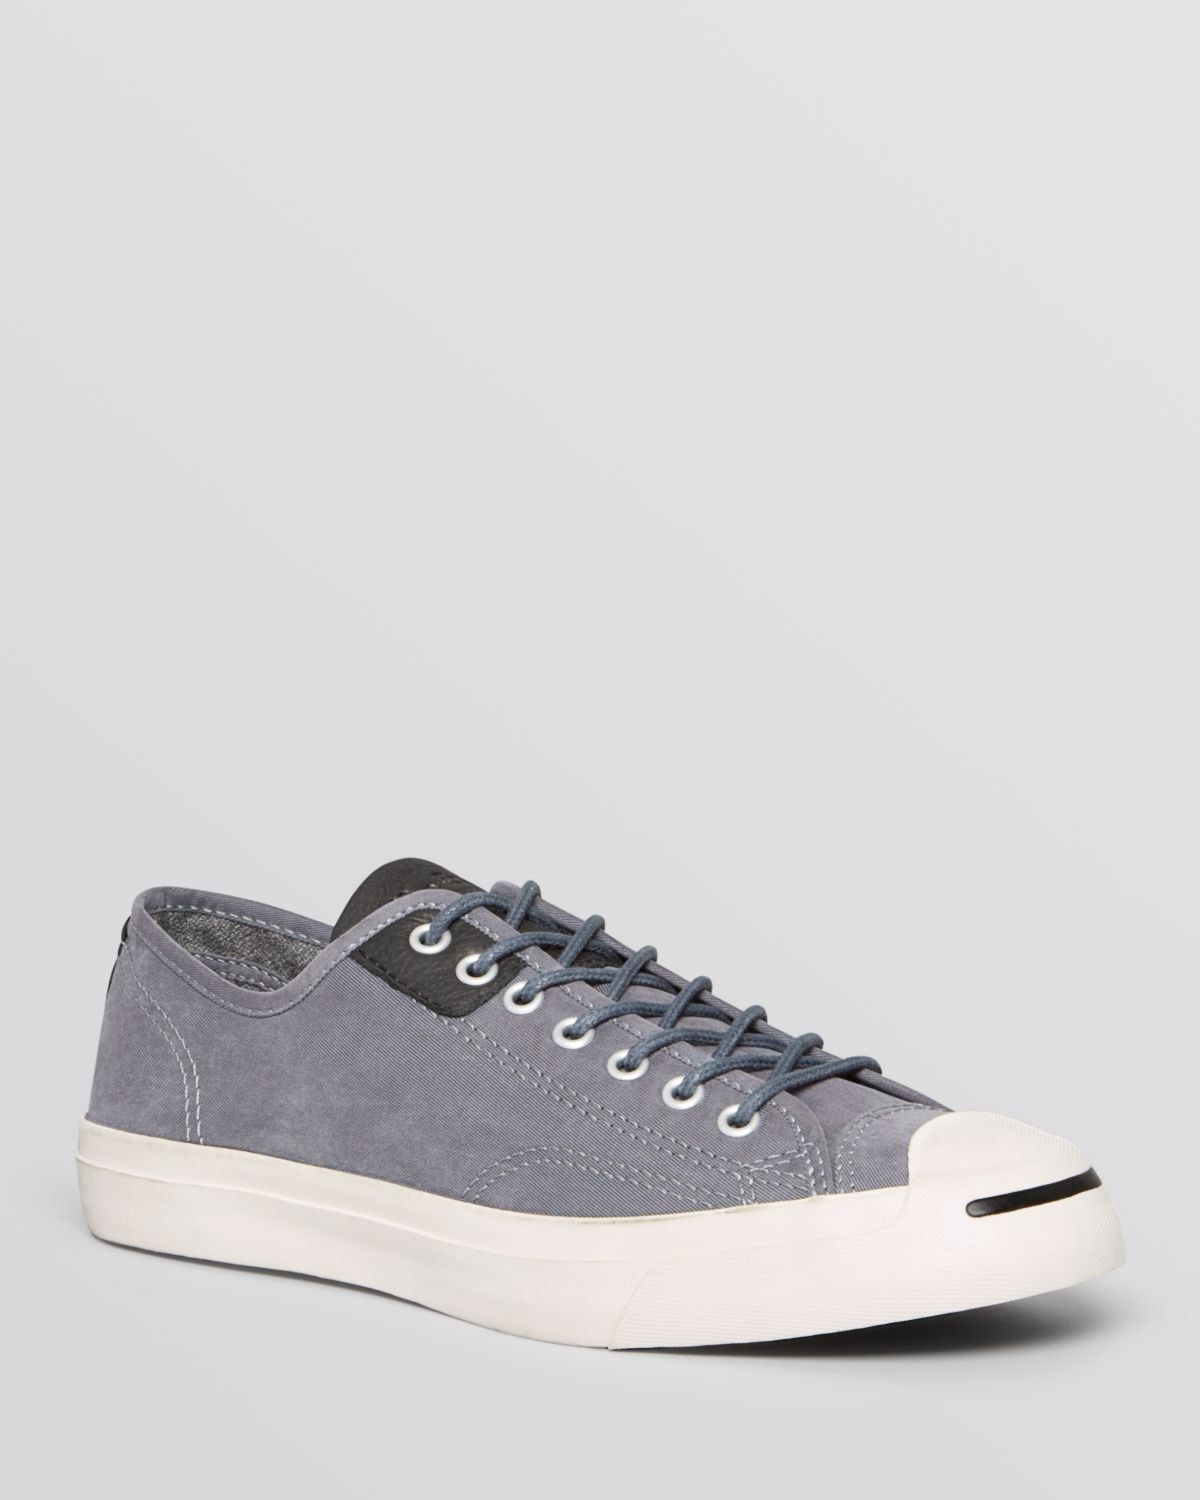 7d4a72772a9 Converse - Gray Jack Purcell Jack Water Resistant Low Top Sneakers for Men  - Lyst